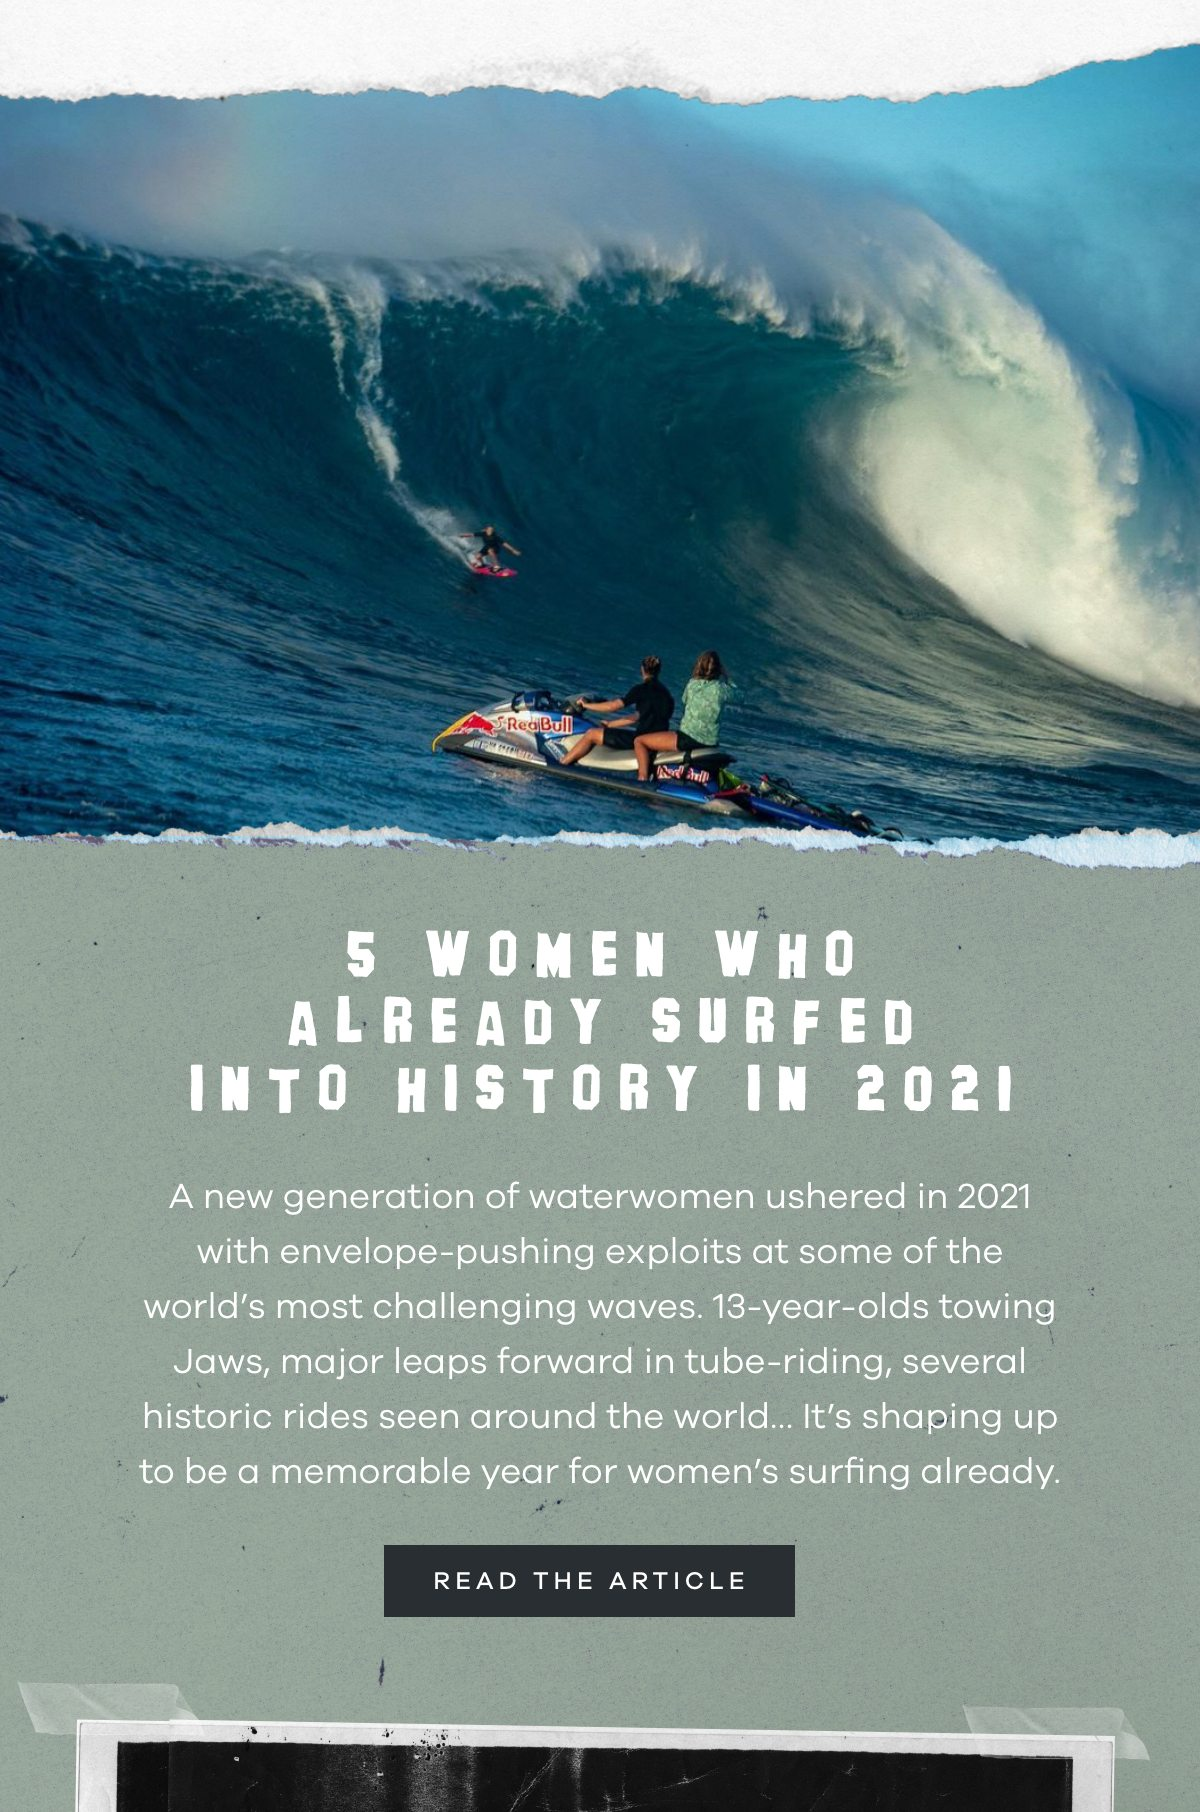 5 Women Who Already Surfed Into History in 2021